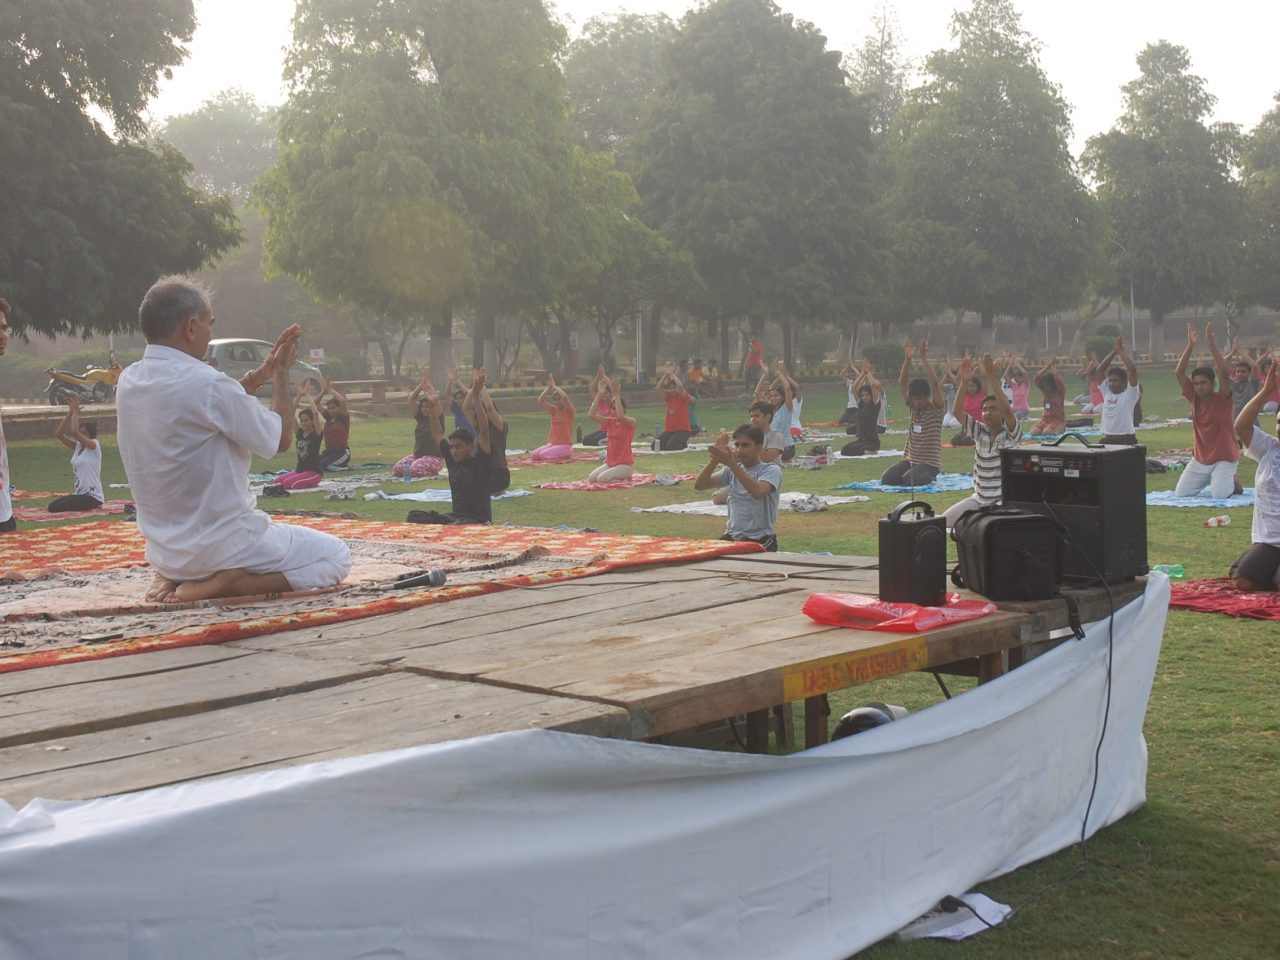 Morning Yoga in open Nature - Clapping as Therapy